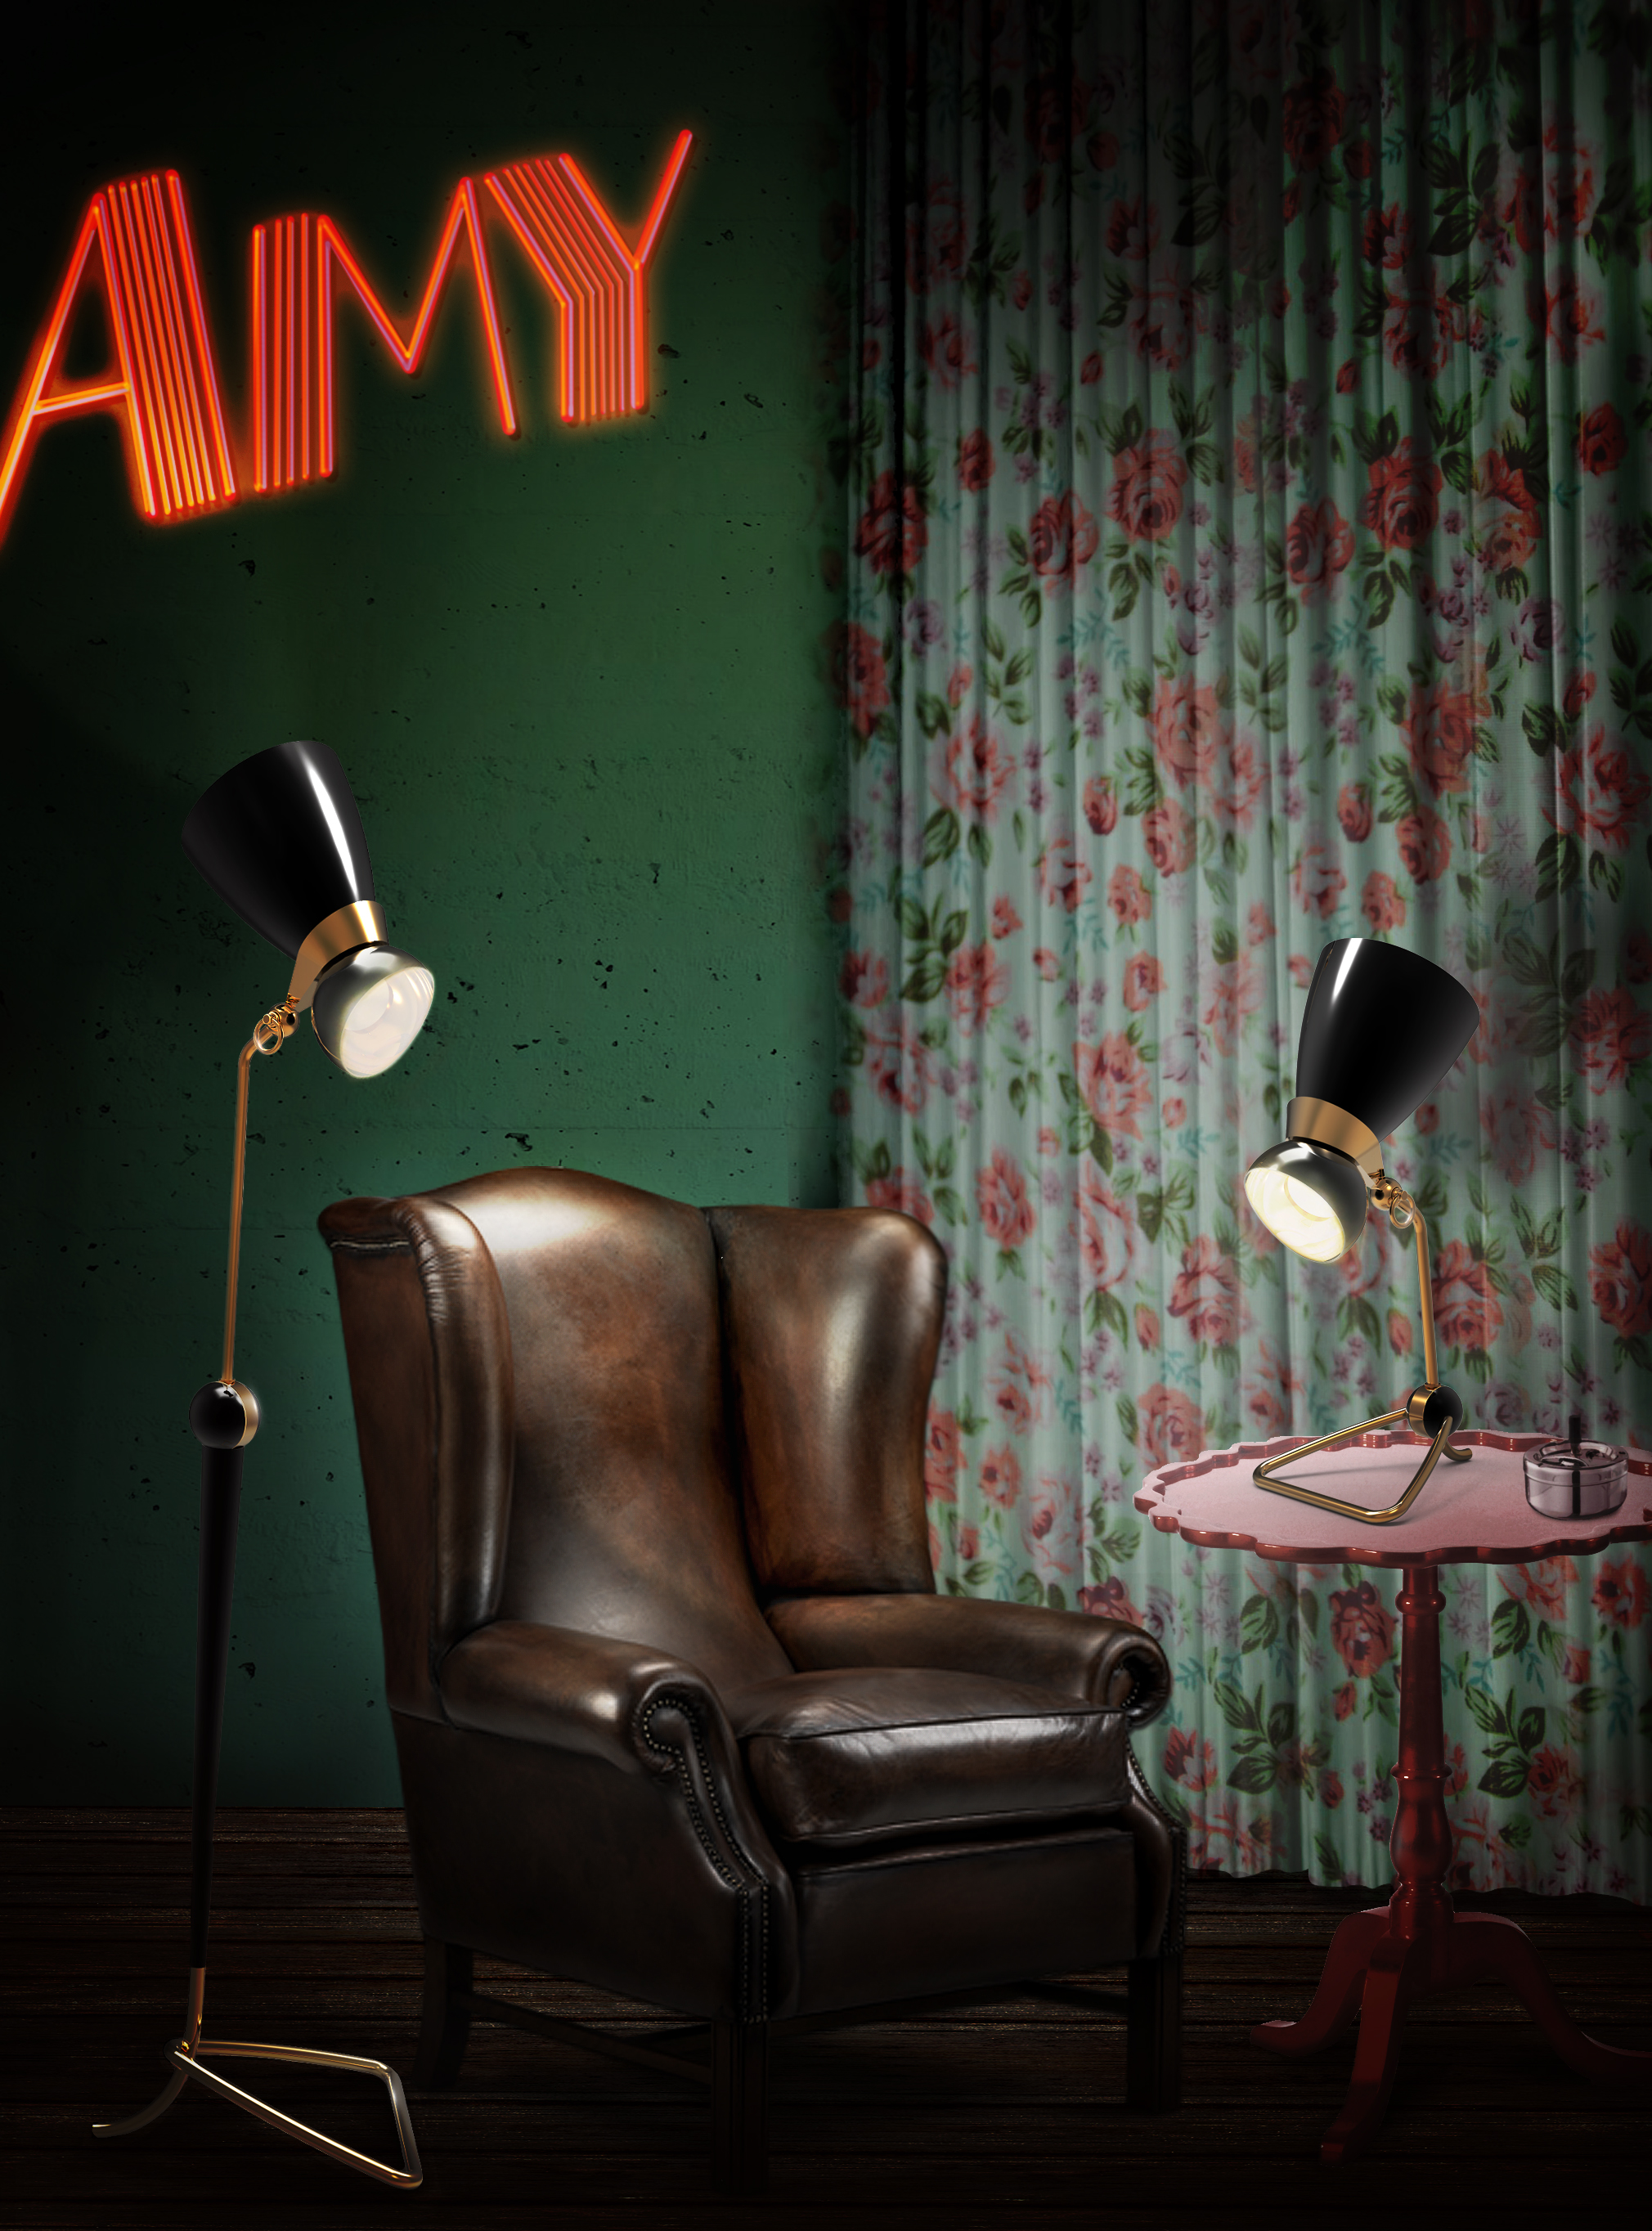 5 Retro Floor Lamps To Make Your Home As Glamourous As You! 1 retro floor lamps 5 Retro Floor Lamps To Make Your Home As Glamourous As You! 5 Retro Floor Lamps To Make Your Home As Glamourous As You 1